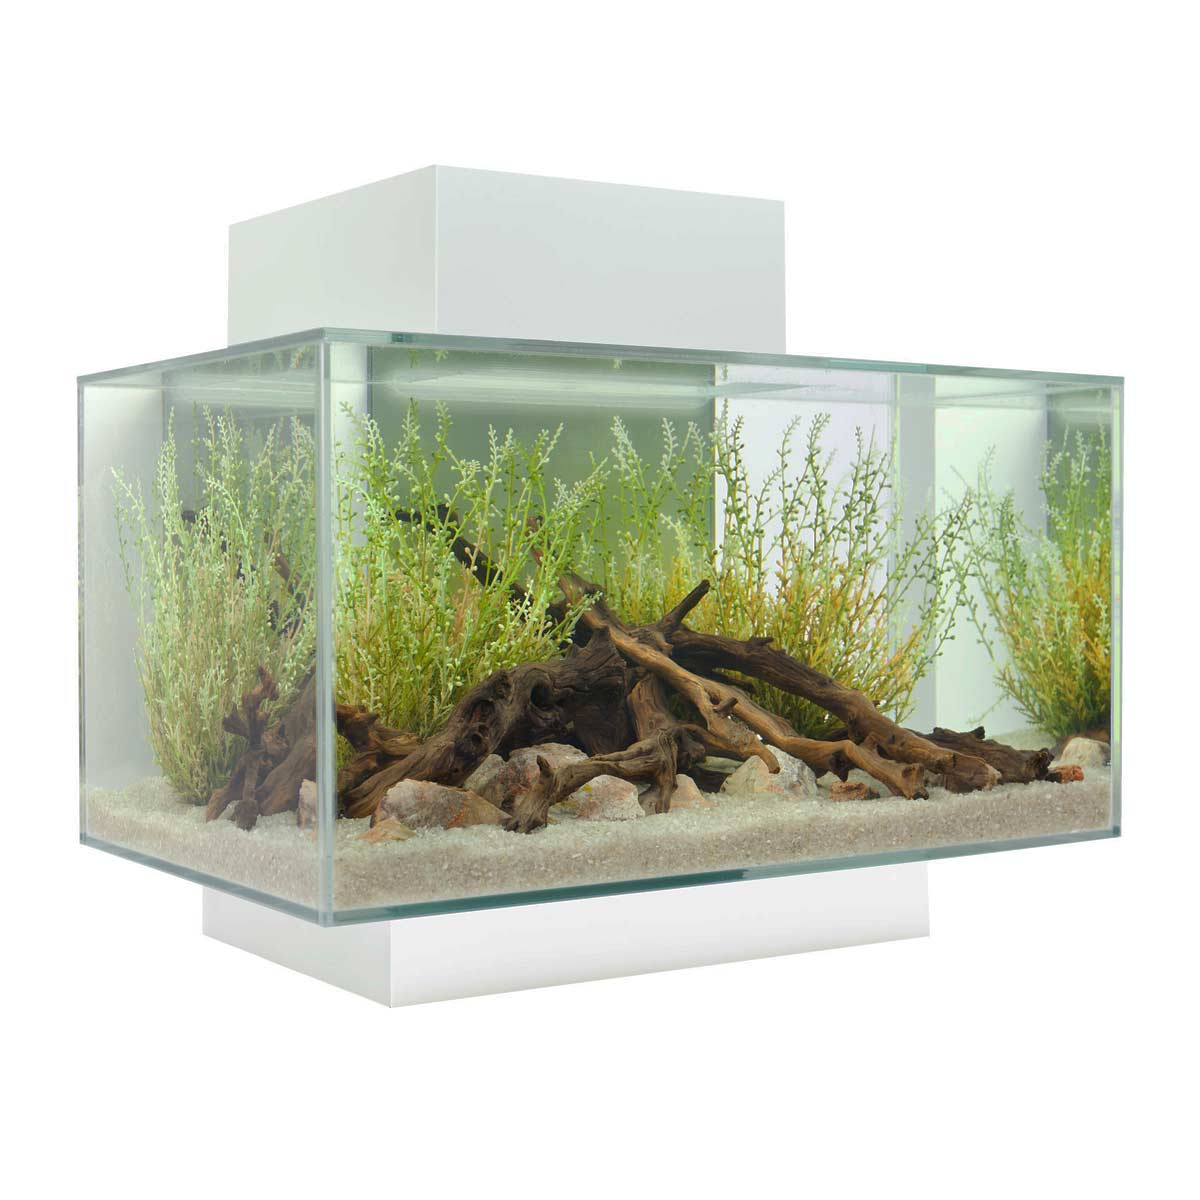 Fish for A 5 Gallon Tank | Fluval Chi | Fluval Amazon